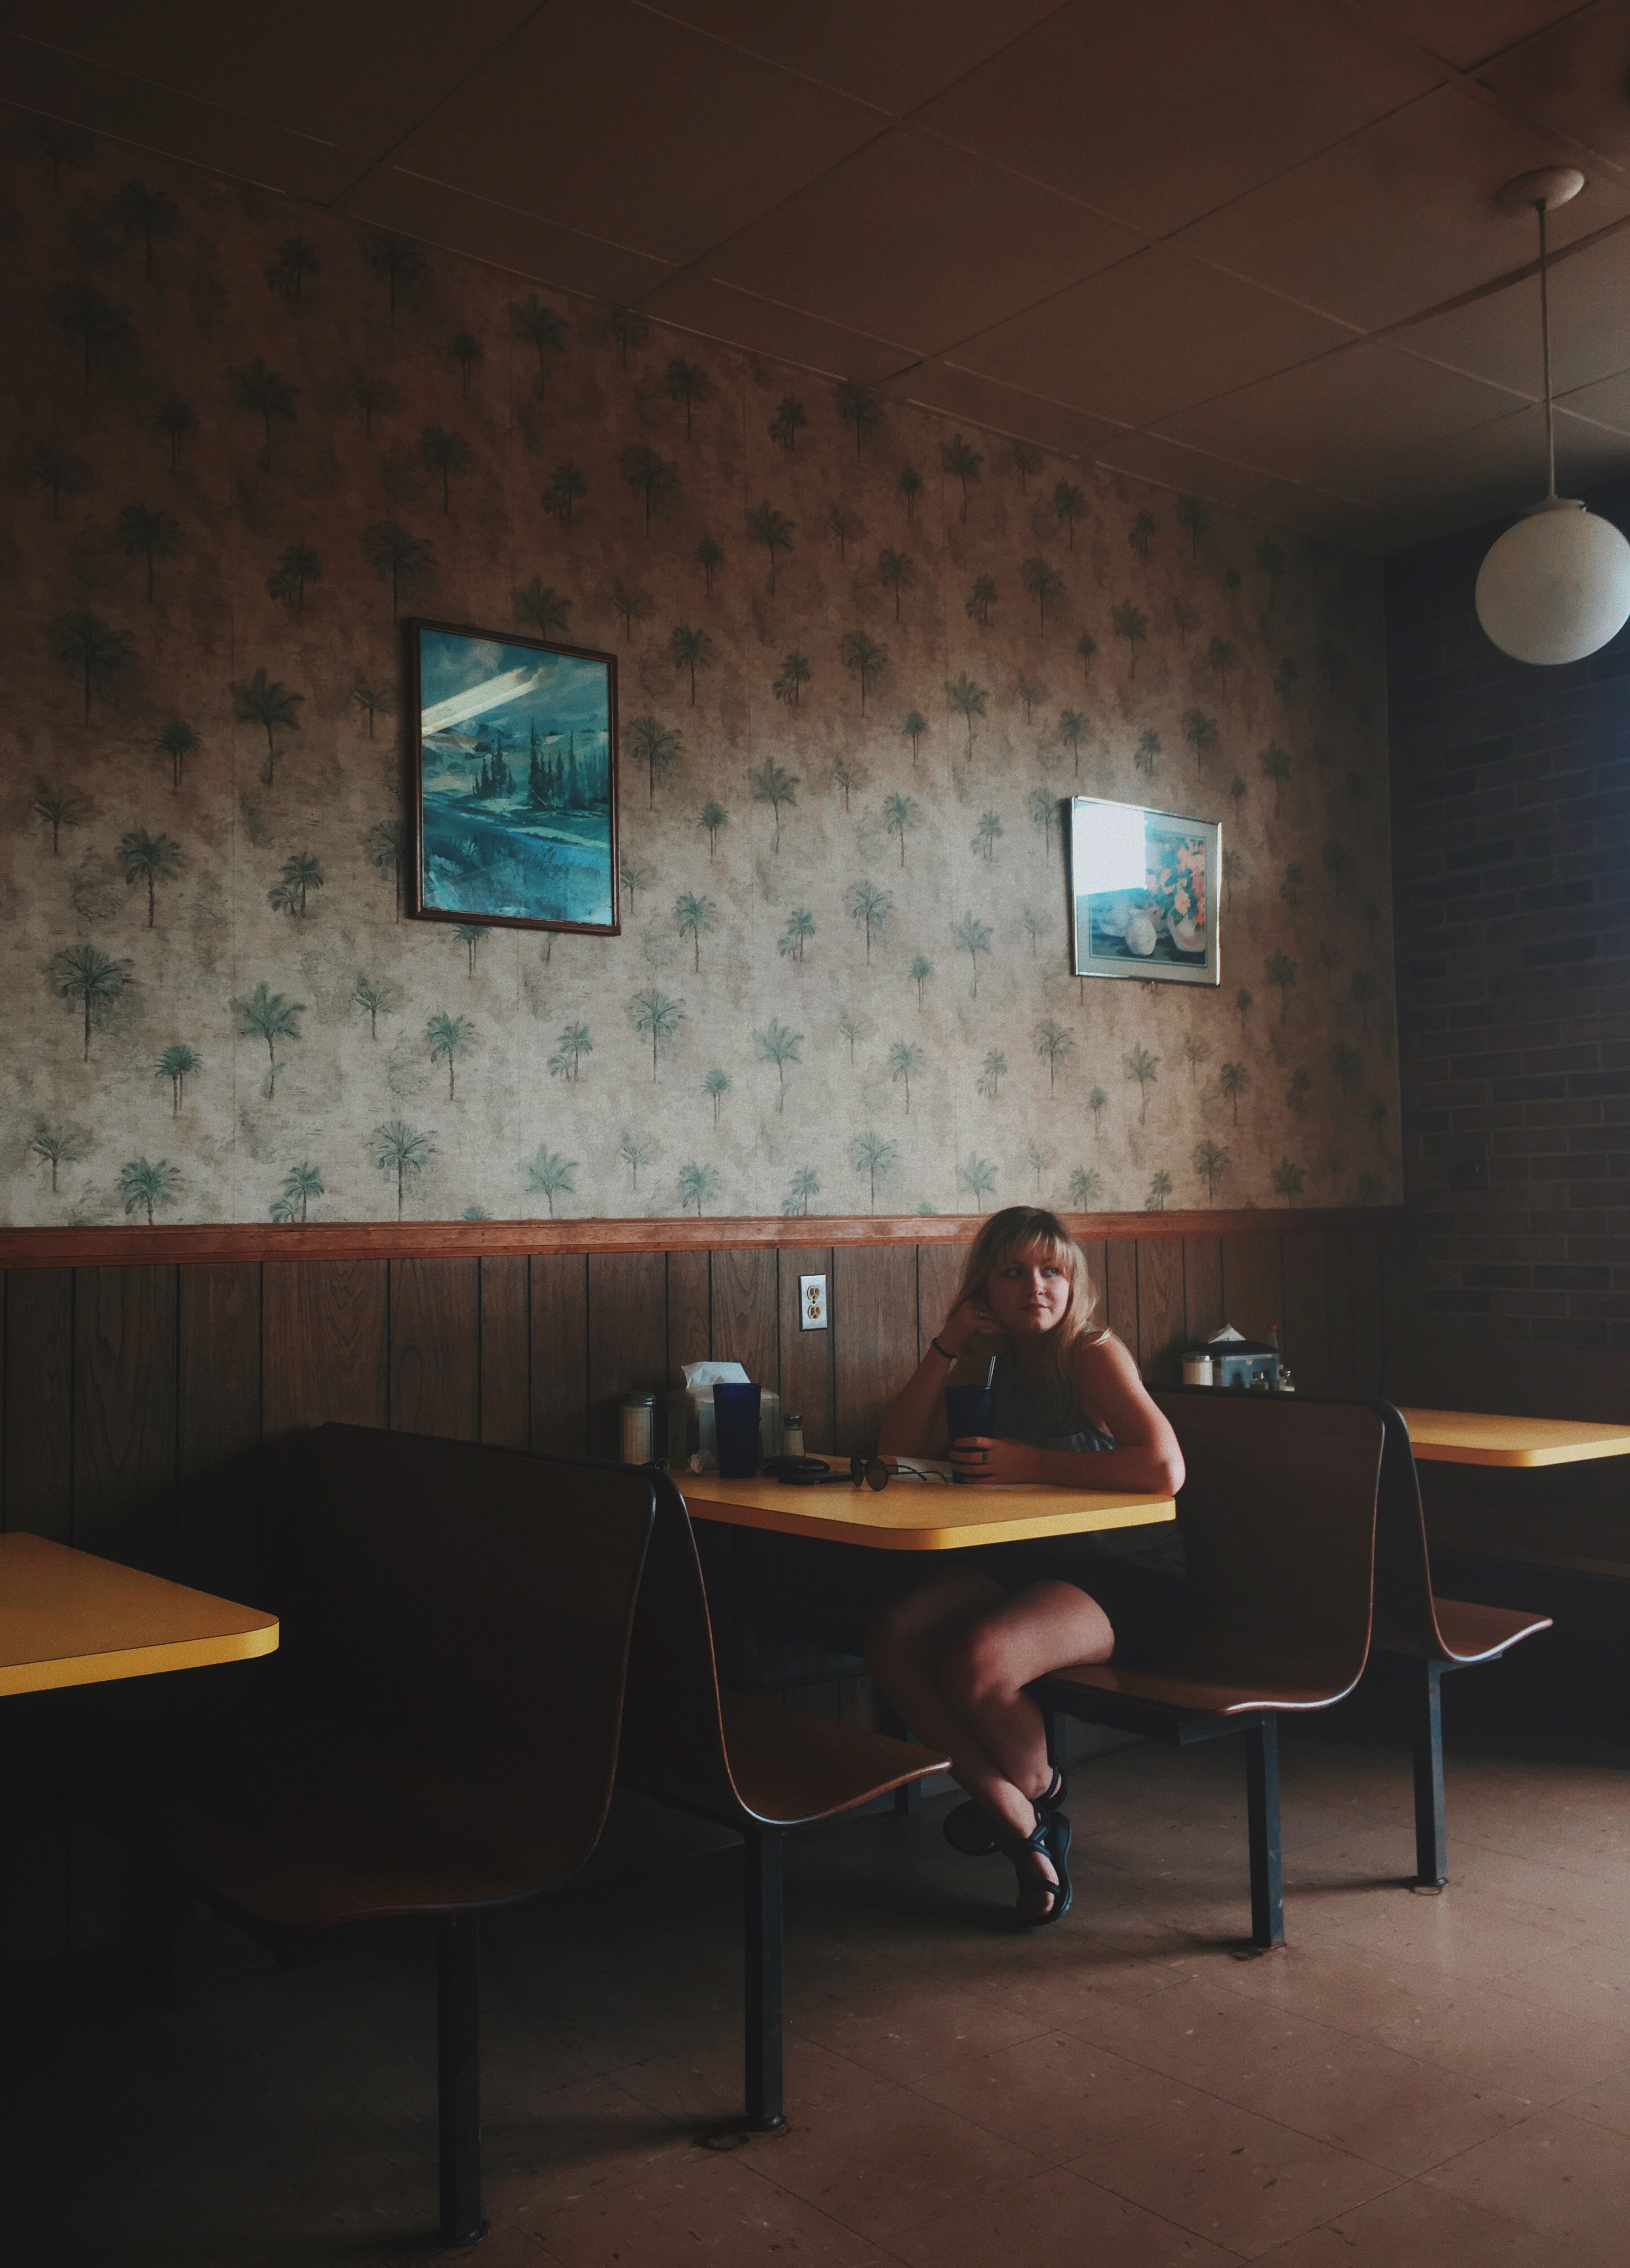 A lone woman sitting at a table in a cozy café